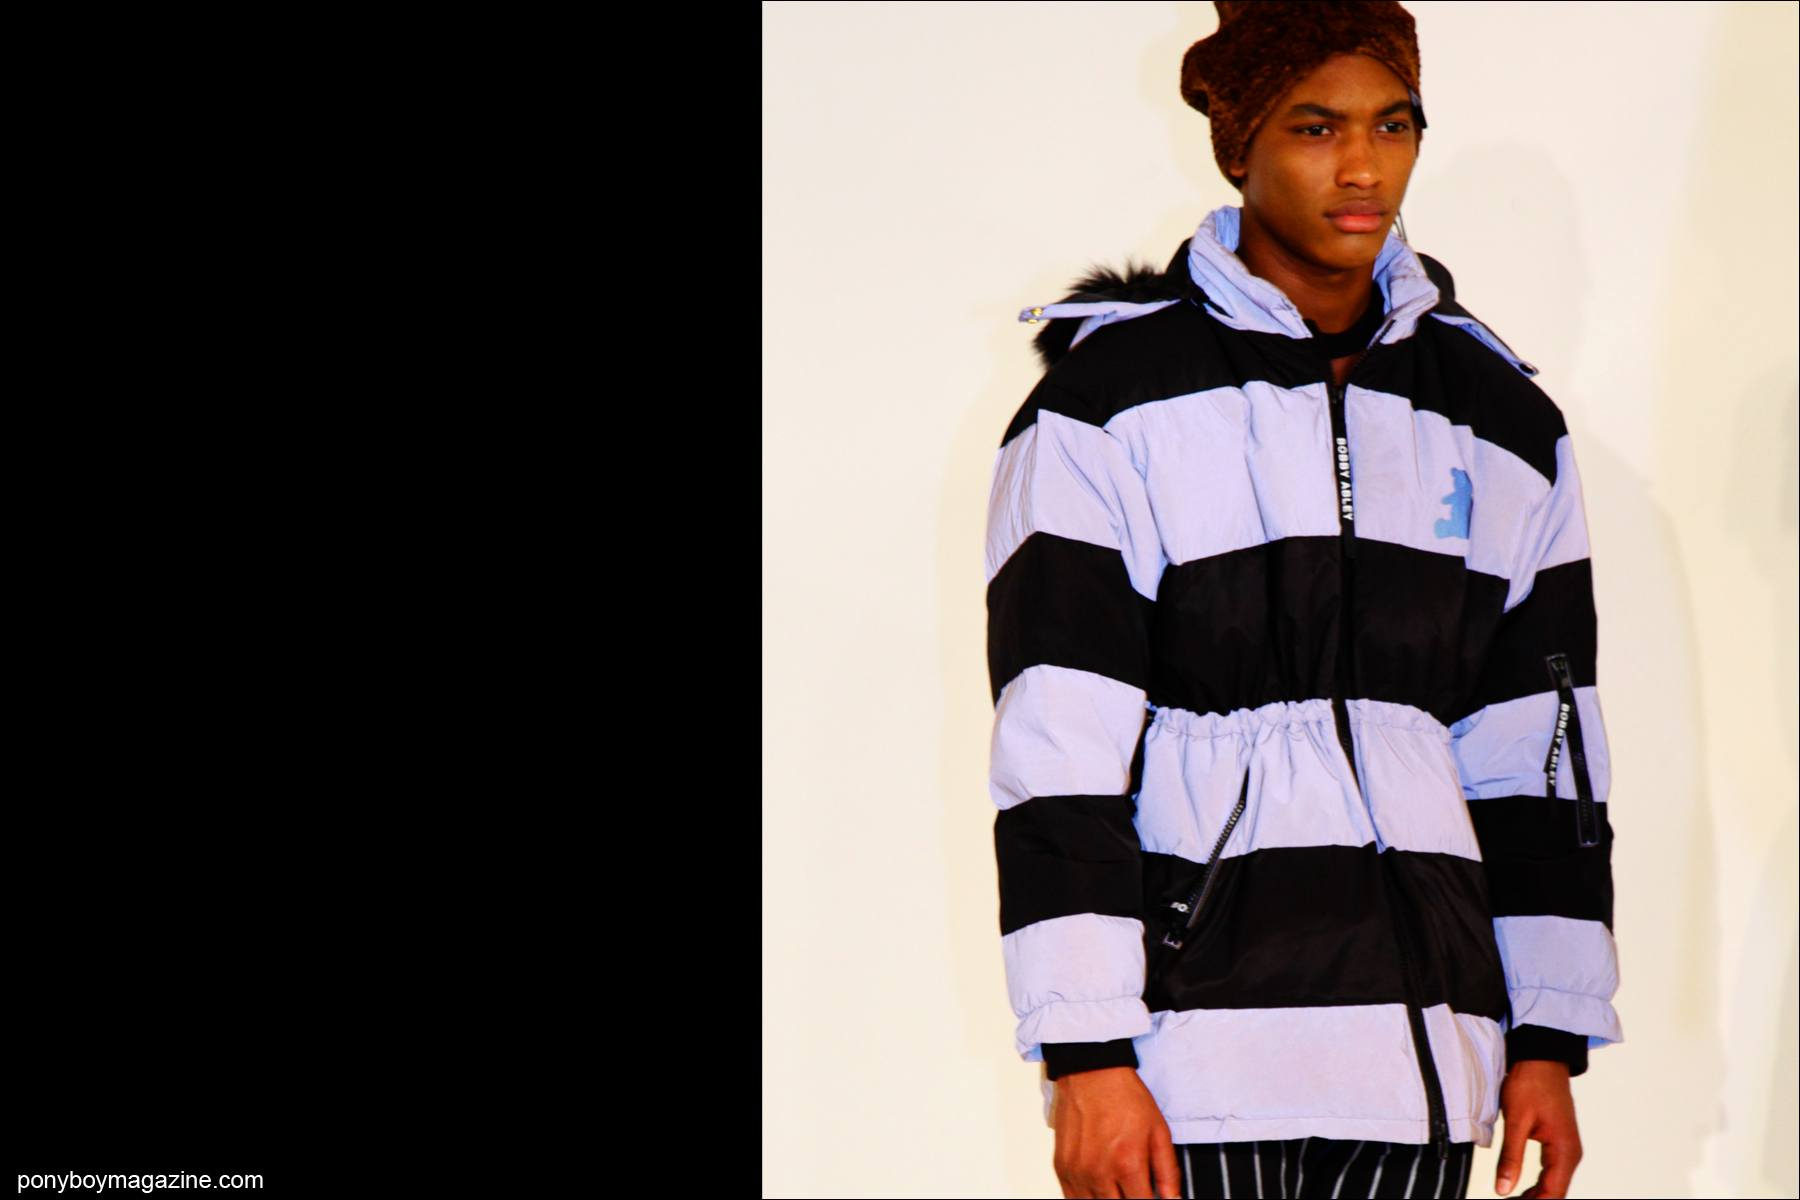 A striped look at Bobby Abley Fall/Winter 2015 collection at Milk Studios in New York City. Photographed by Alexander Thompson for Ponyboy magazine.